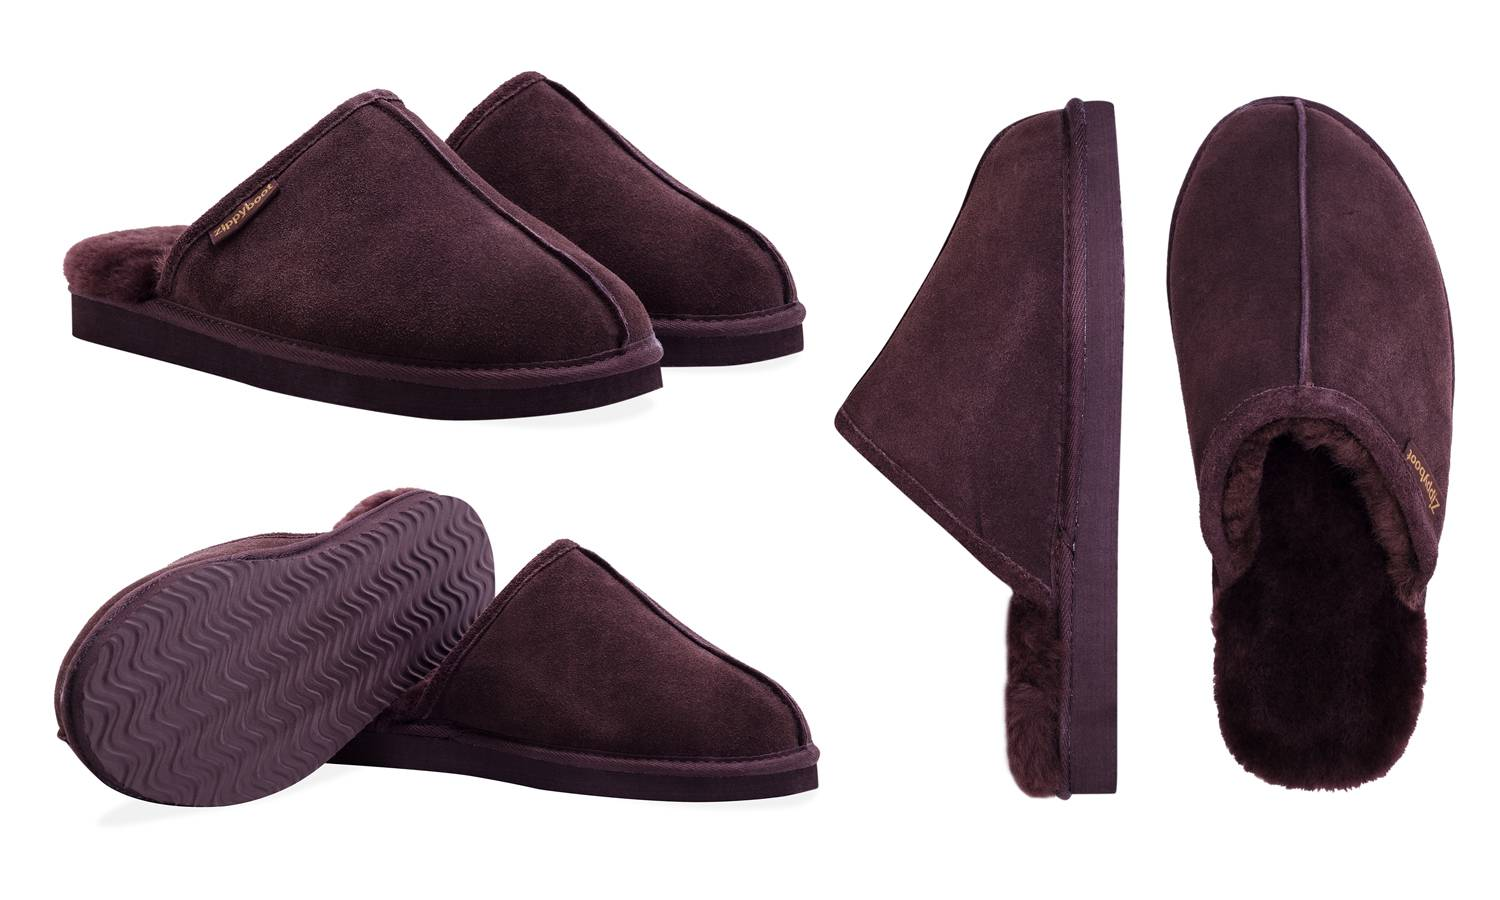 Chaussons homme en cuir Redfoot : Chocolat / 42